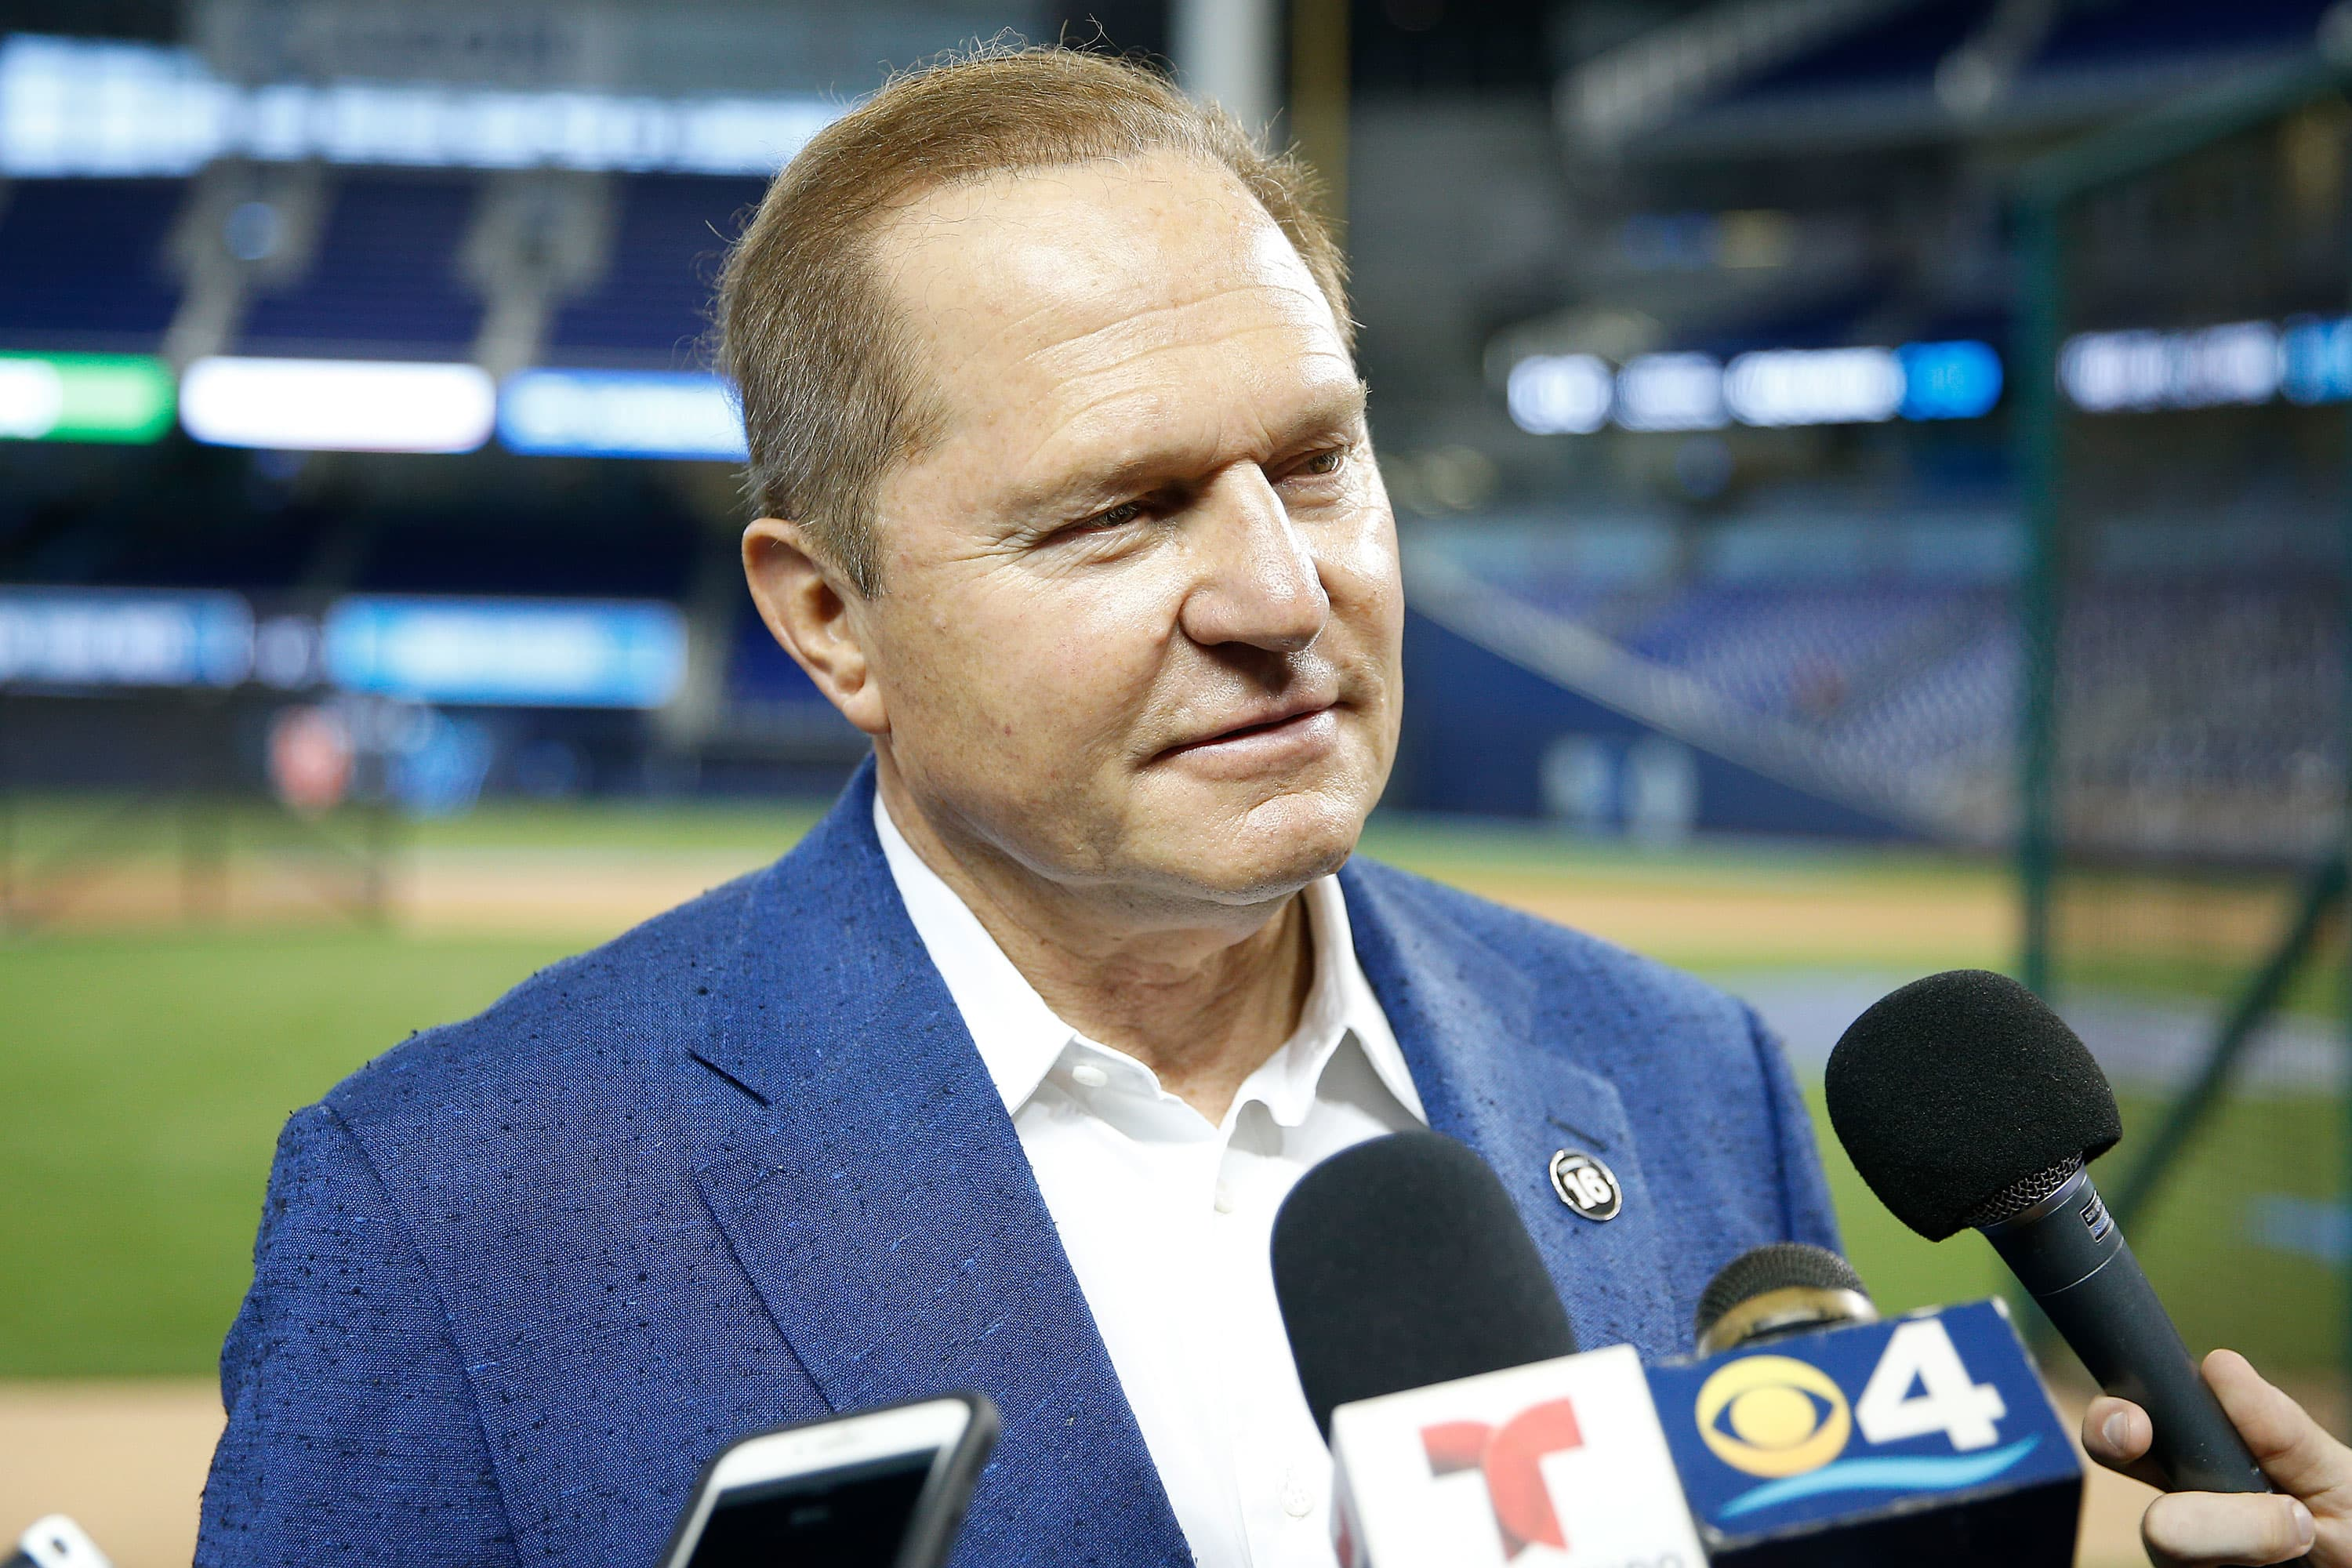 Sports agent Scott Boras says huge MLB contracts prove 'Moneyball' model doesn't work